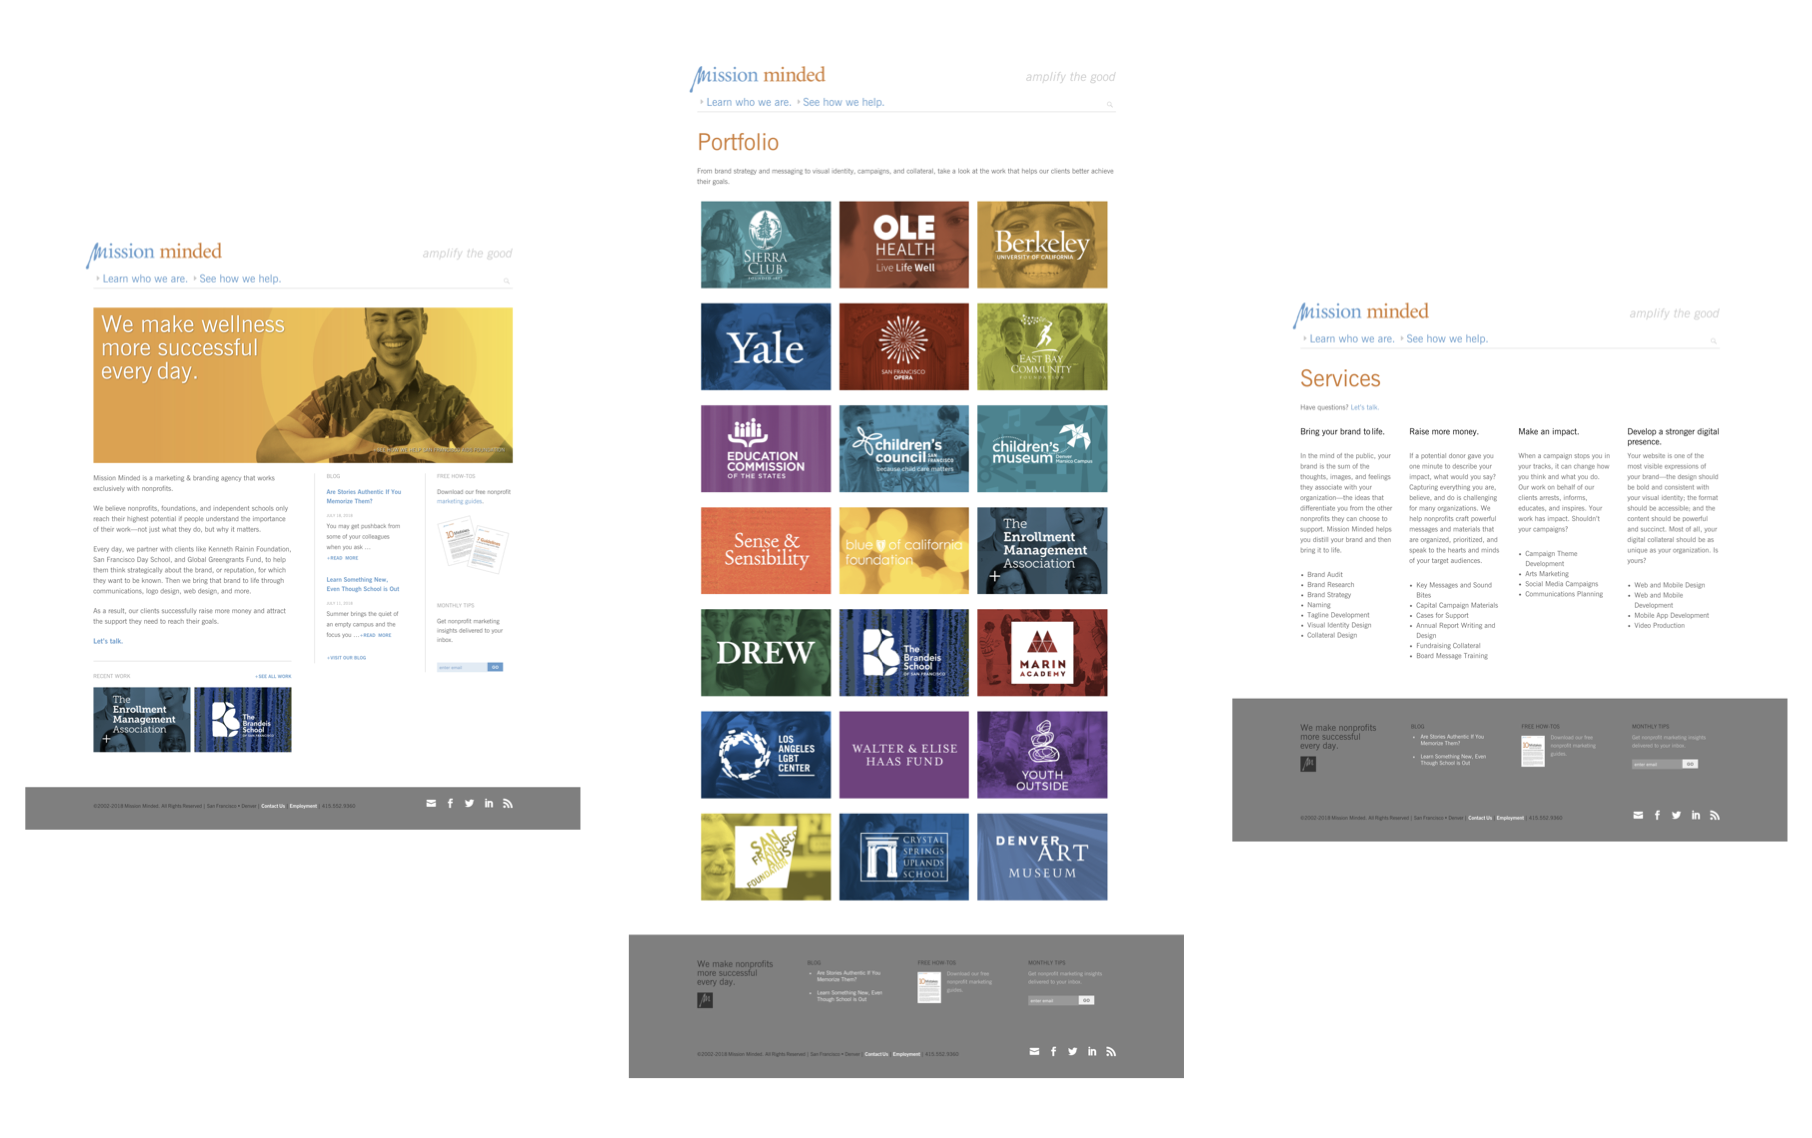 Mission Minded's existing website: homepage, portfolio landing page, services page.